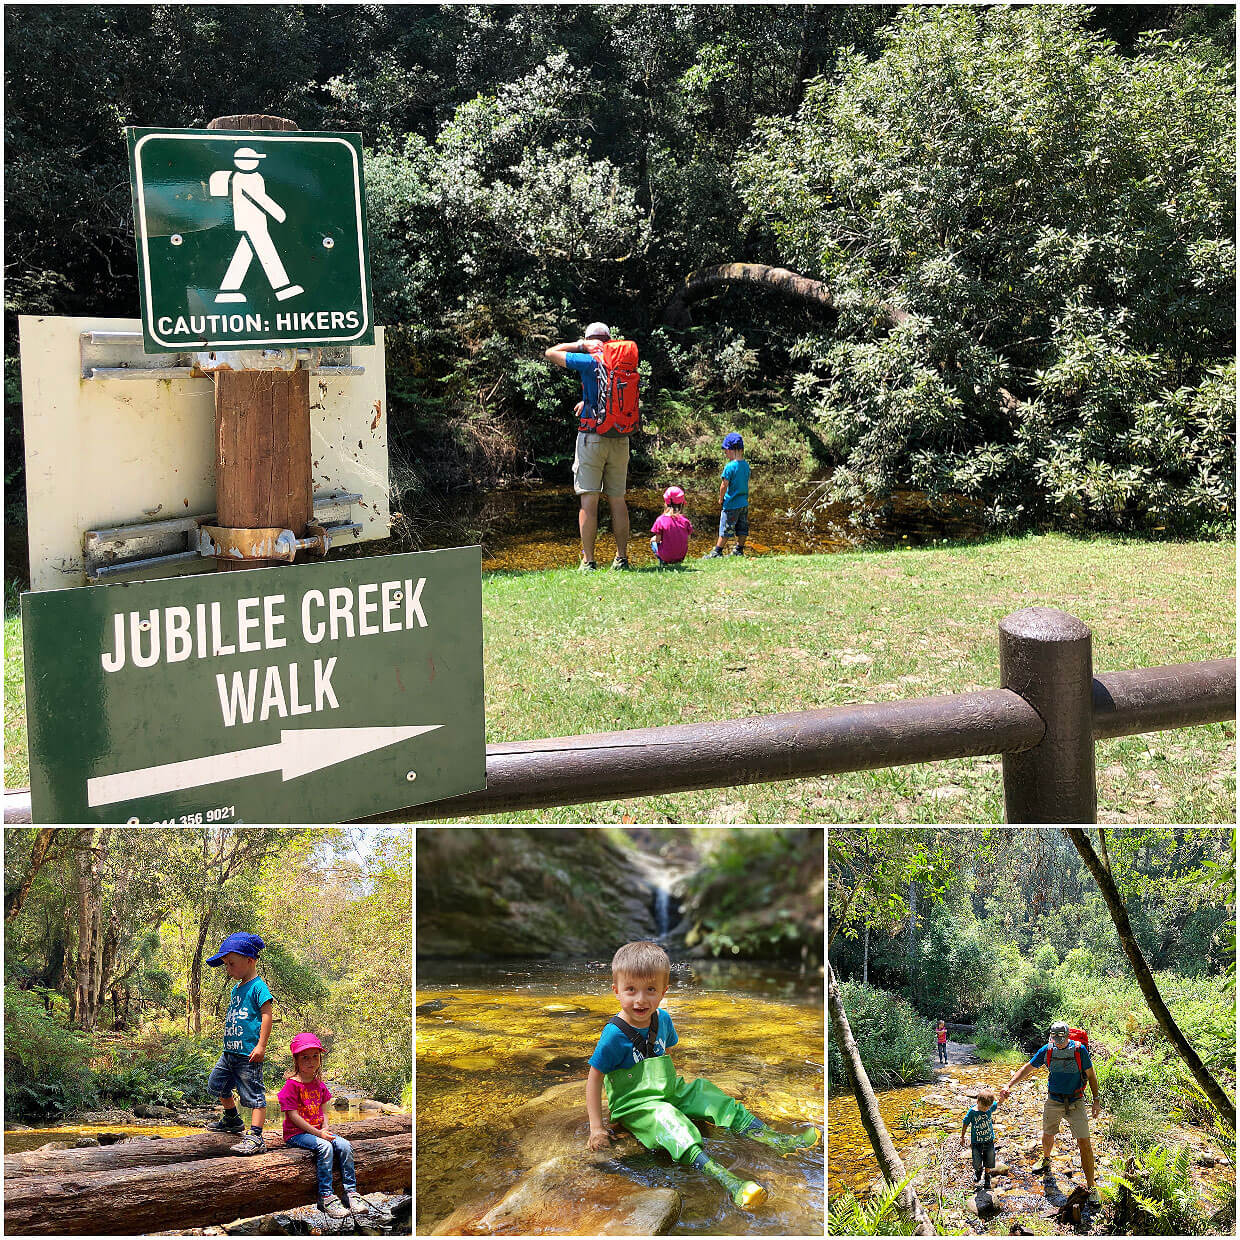 Jubilee Creek Walk in Knysna Forest